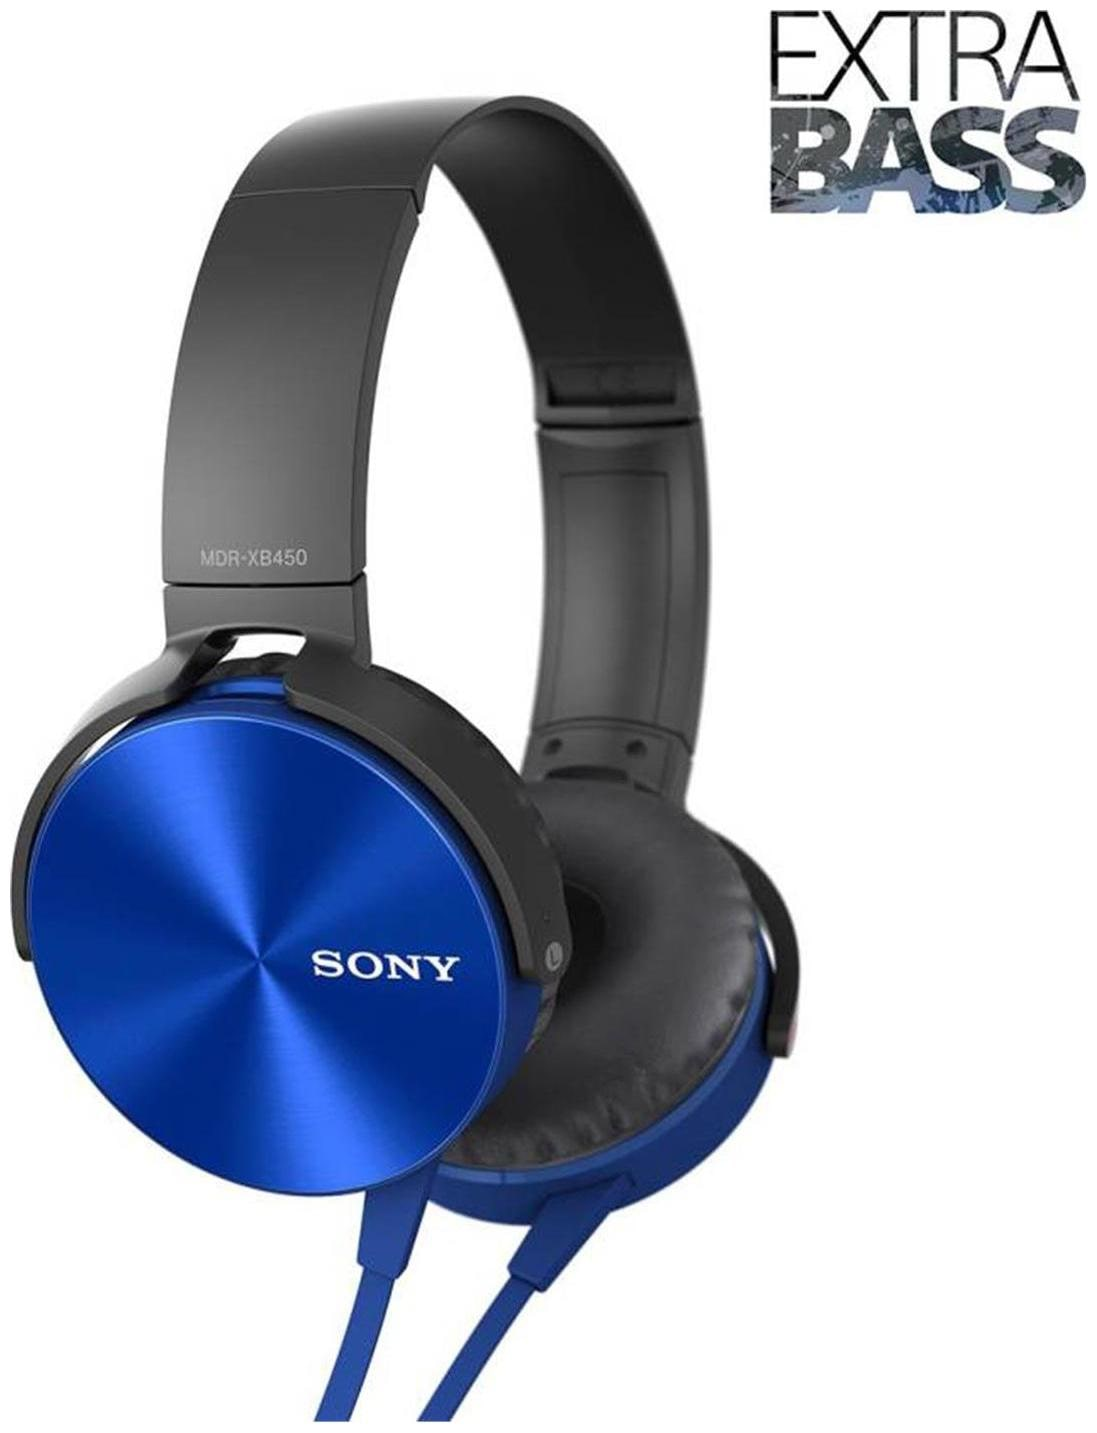 Sony MDR XB450 On Ear Wired Headphone   Blue   by Click Buy